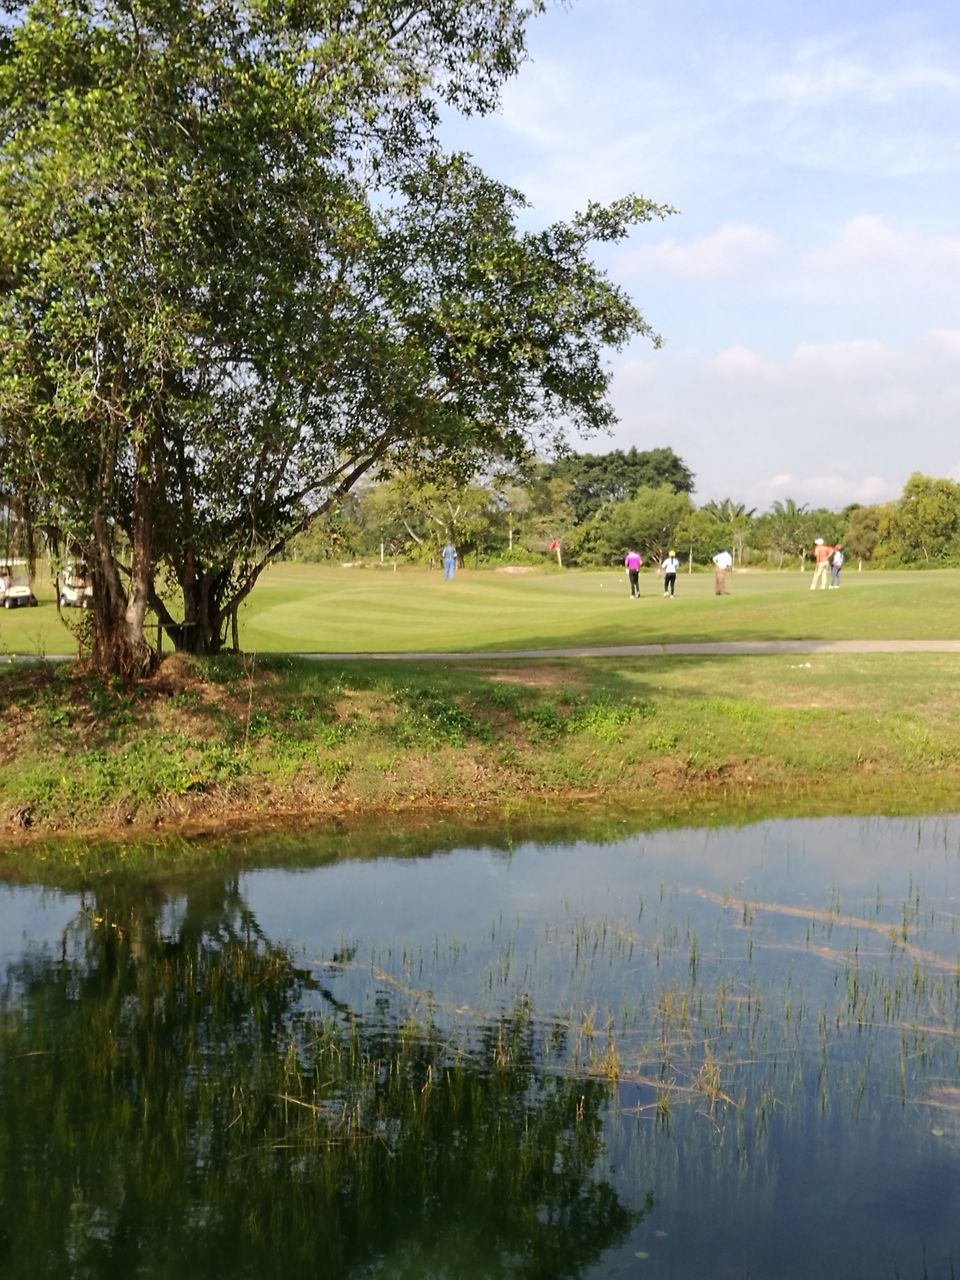 tree, leisure activity, grass, nature, real people, beauty in nature, water, day, green color, growth, sky, reflection, lifestyles, lake, golf, outdoors, golf course, tranquility, weekend activities, tranquil scene, scenics, men, playing, togetherness, green - golf course, golfer, people